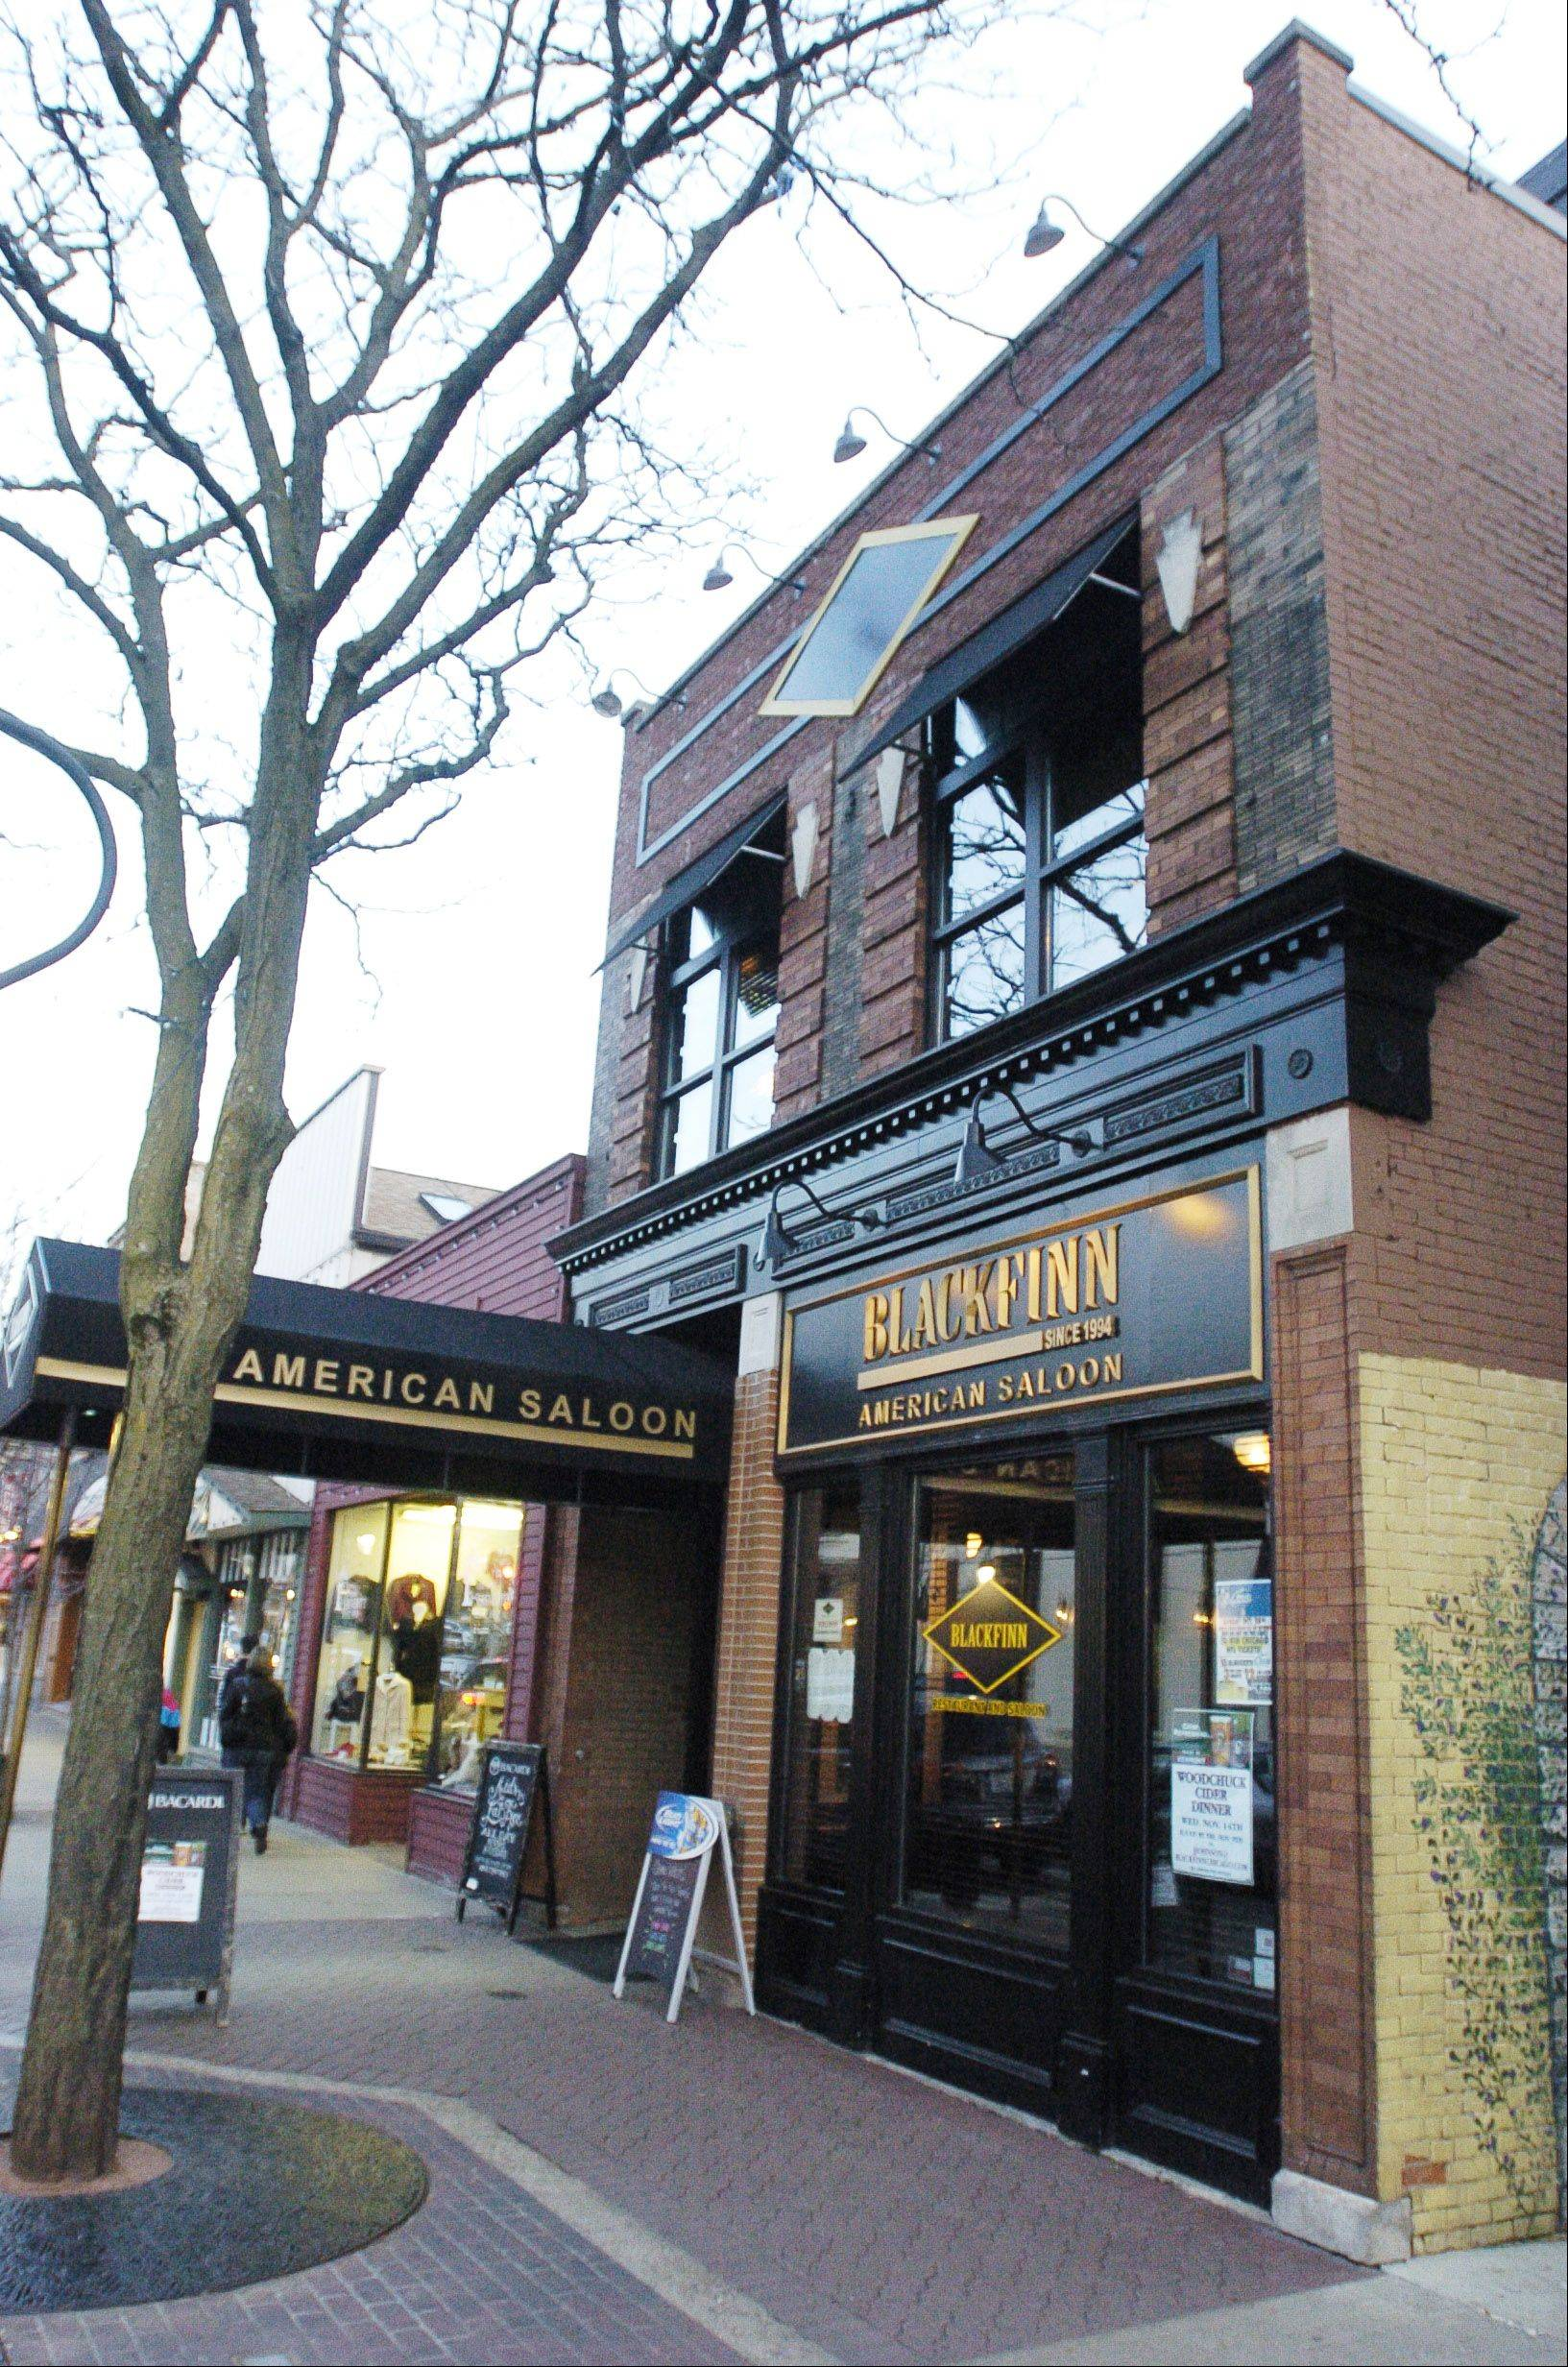 Black Finn American Saloon in Naperville has been the subject of complaints, according to Naperville officials. Police Chief Bob Marshall and city attorney Jill Wilger met with Black Finn's operations partner Lenny Skorcz to address concerns over fights and increasing police calls.